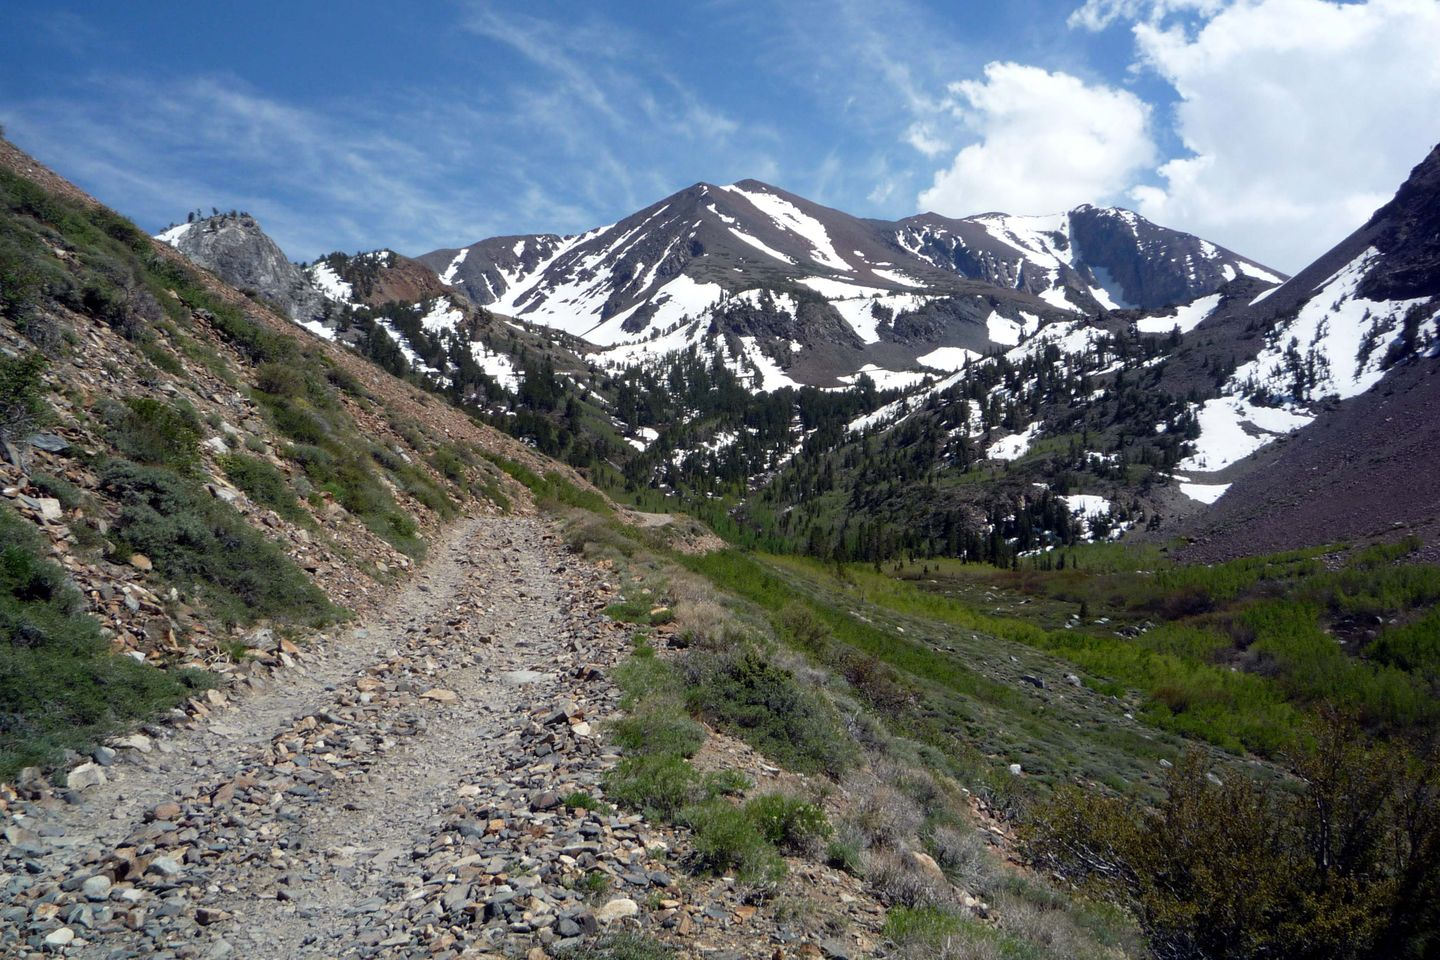 Laurel Lakes Road - Waypoint 6: Last Turnout before Switchbacks